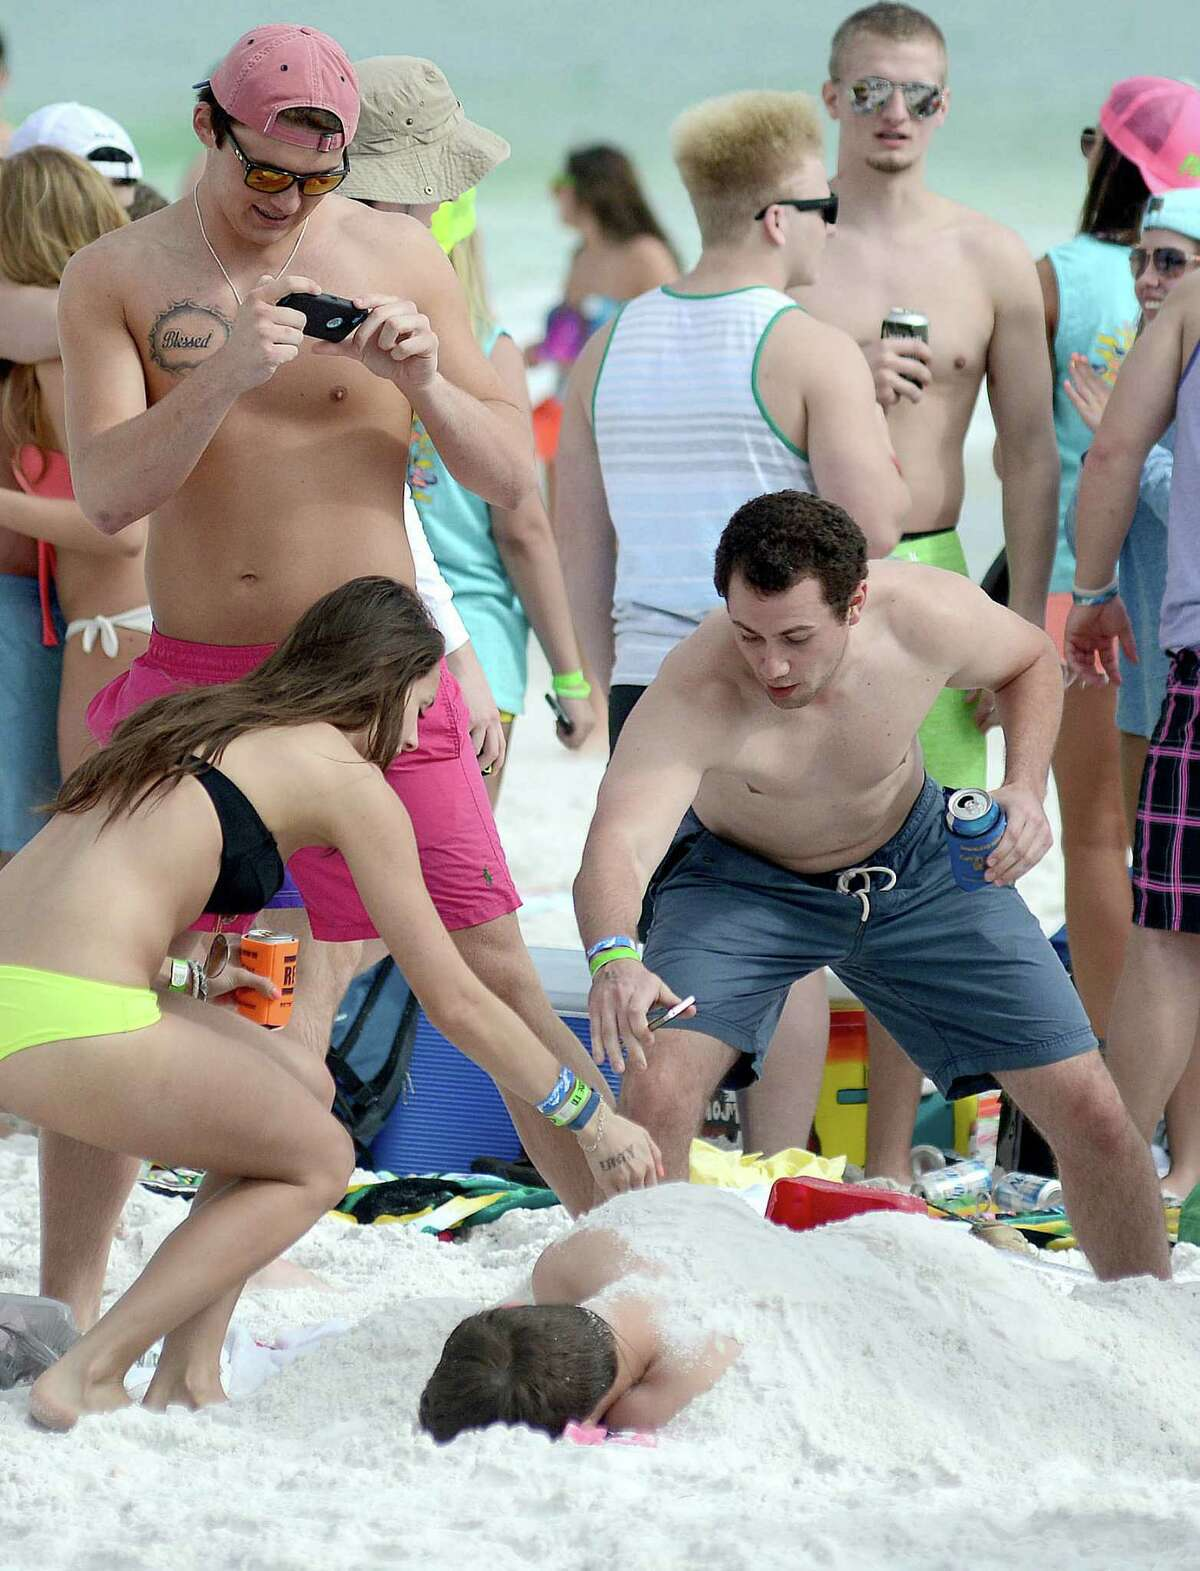 Spring breakers photograph their friend sleeping on the beach on Tuesday, March 18, 2014 in Destin, Fla.